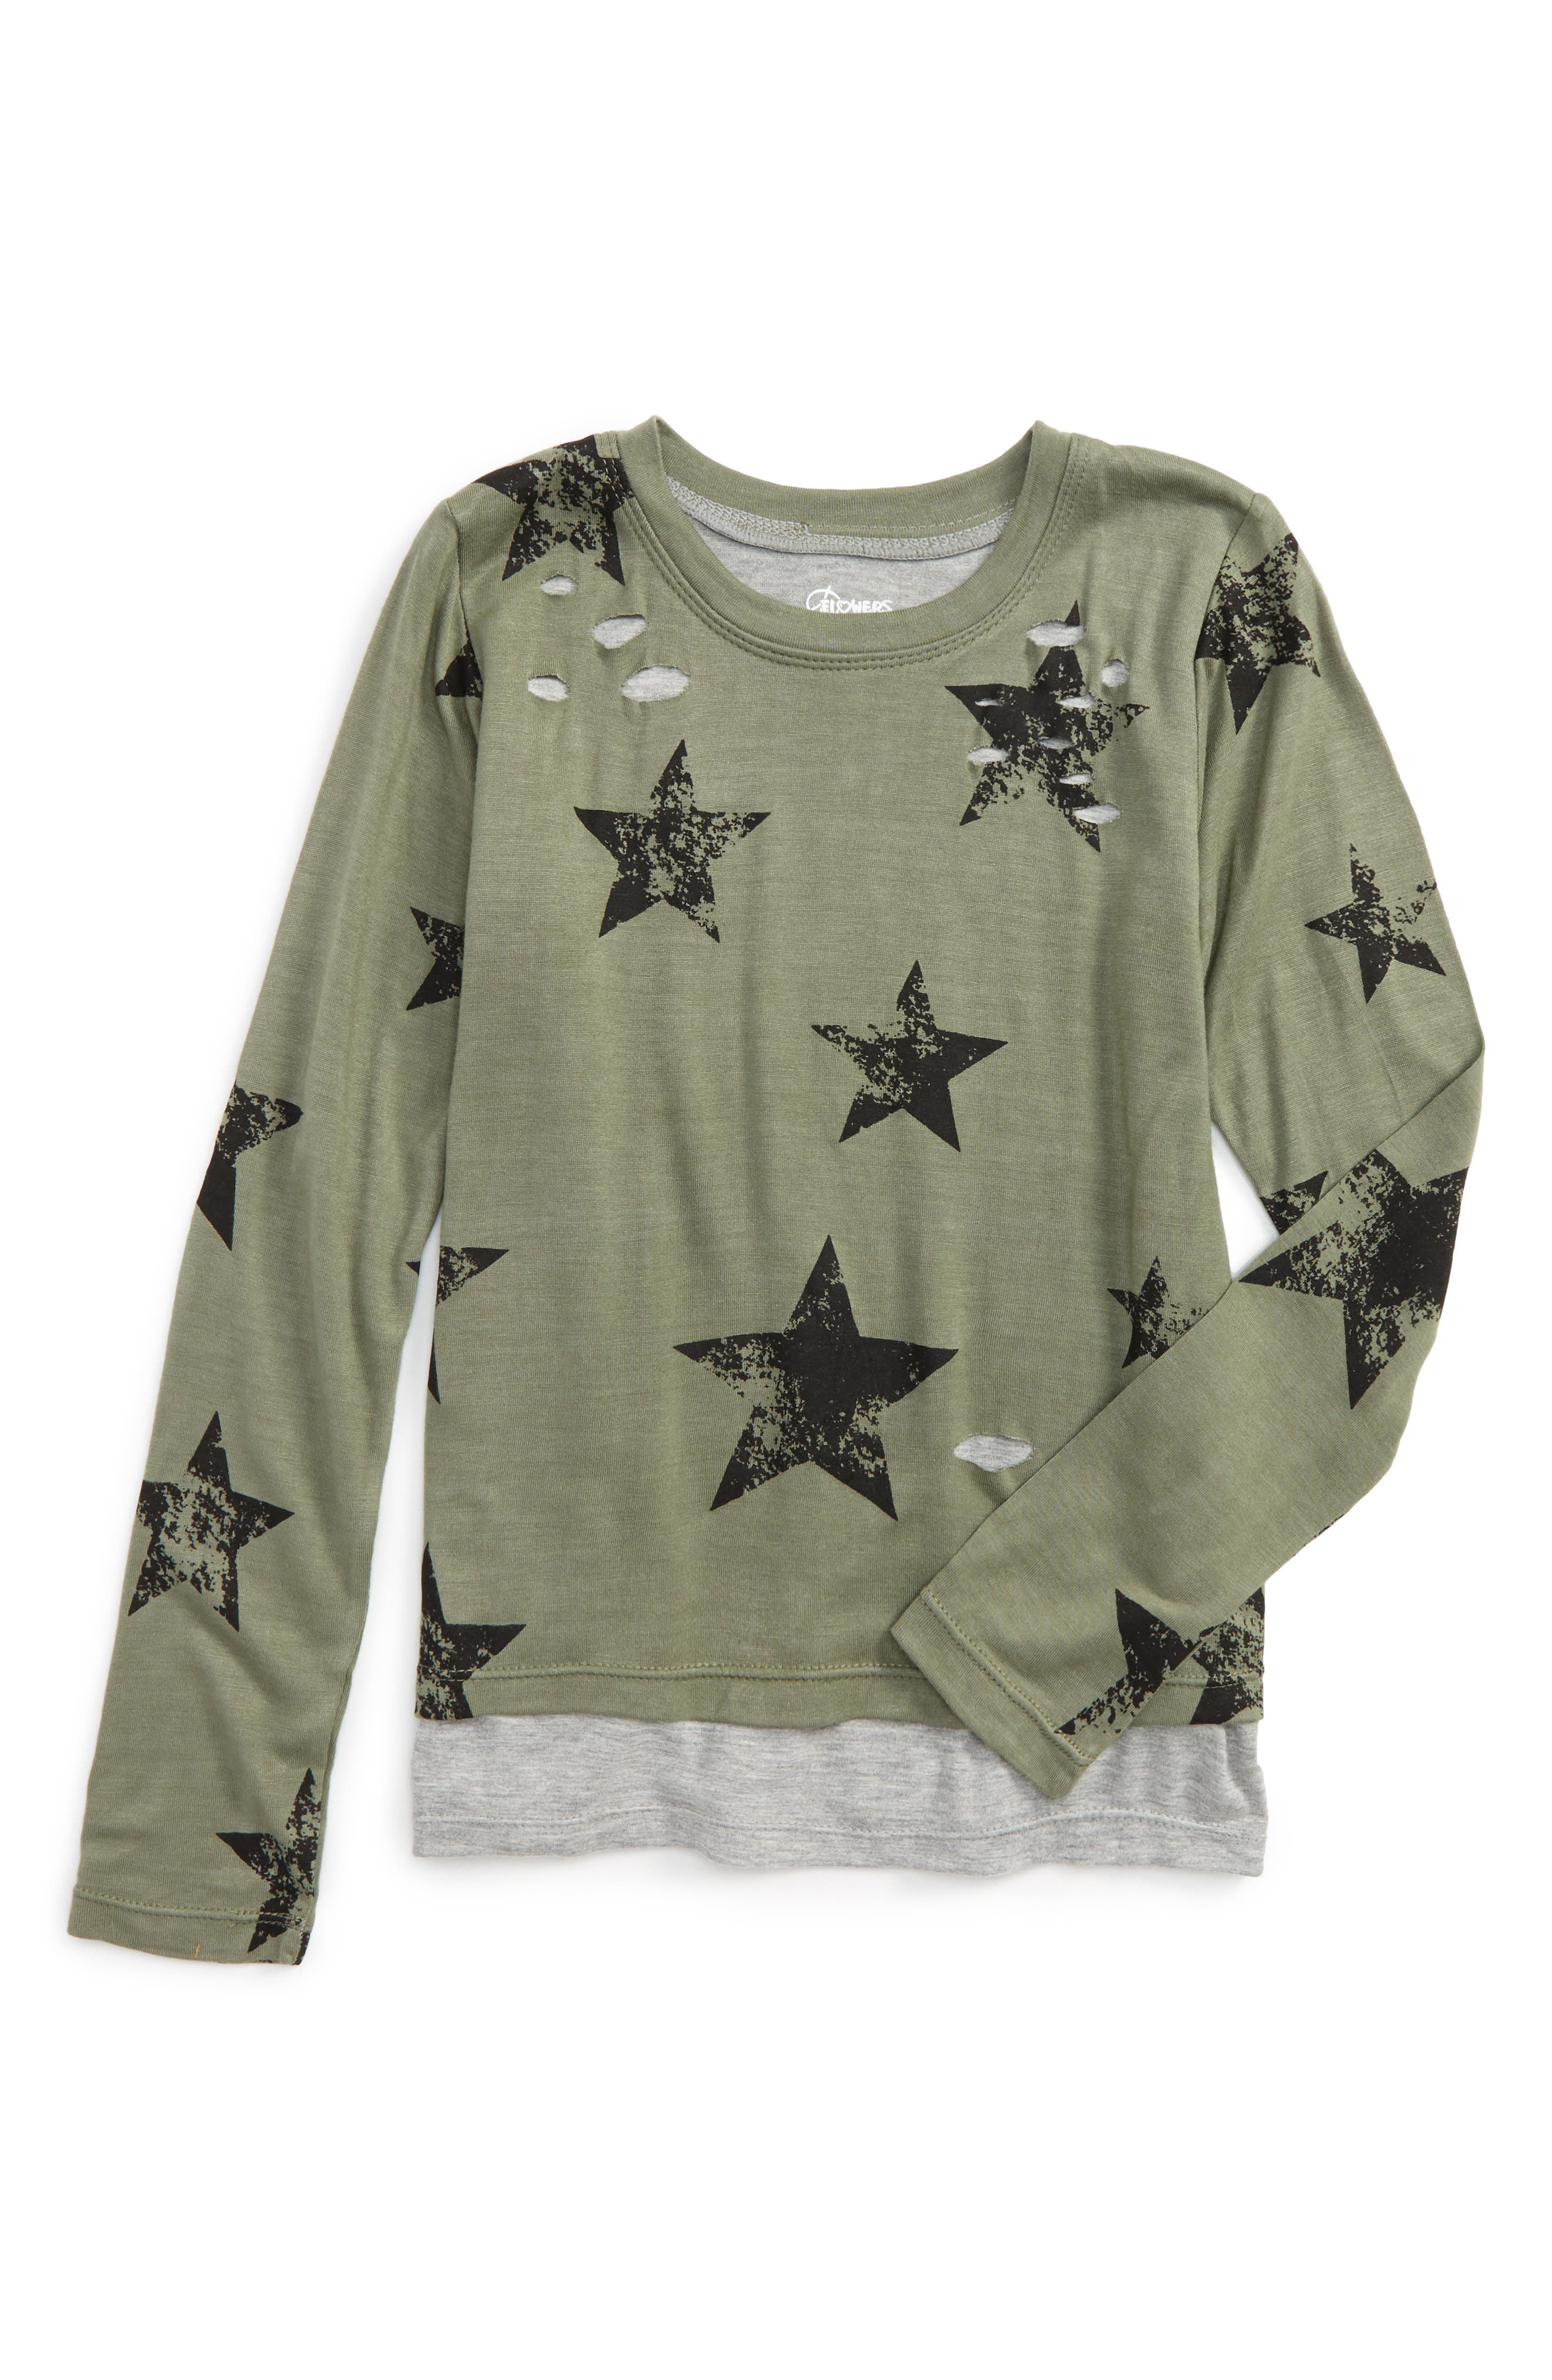 Main Image - Flowers by Zoe Star Layered Top (Little Girls & Big Girls)